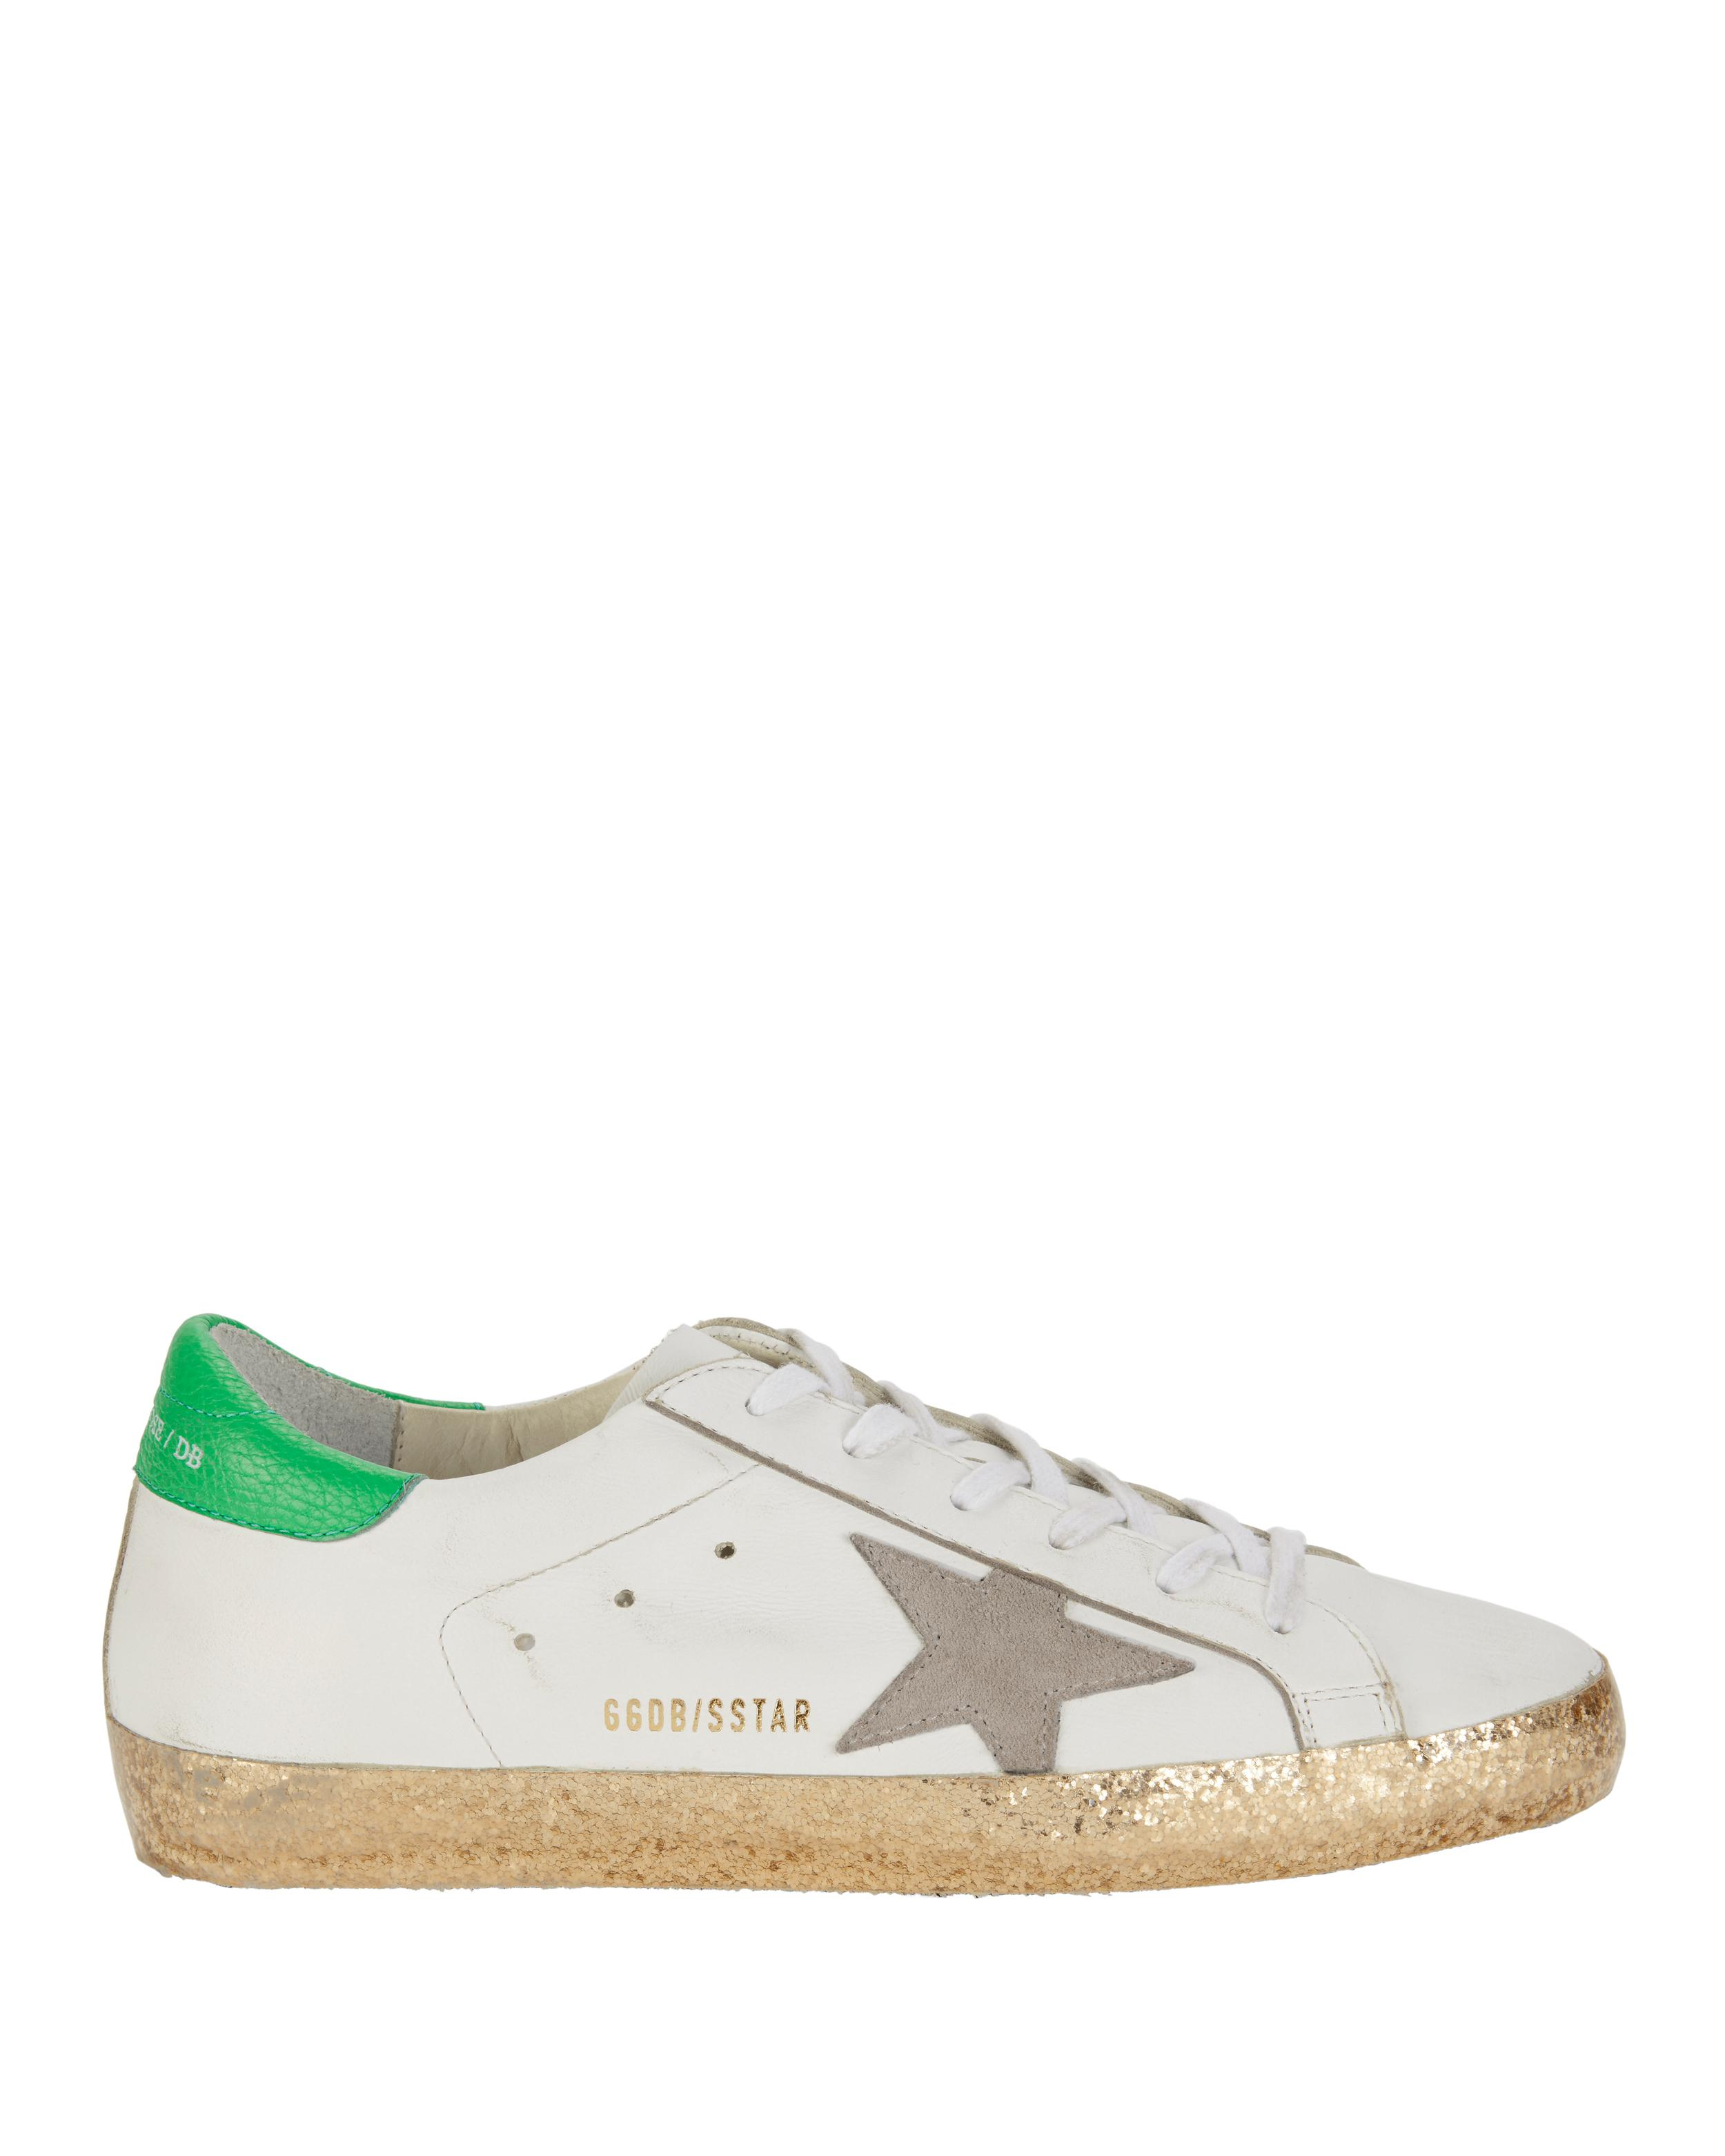 274596dfe2 Golden Goose Deluxe Brand Superstar White And Gold Glitter Sneakers ...